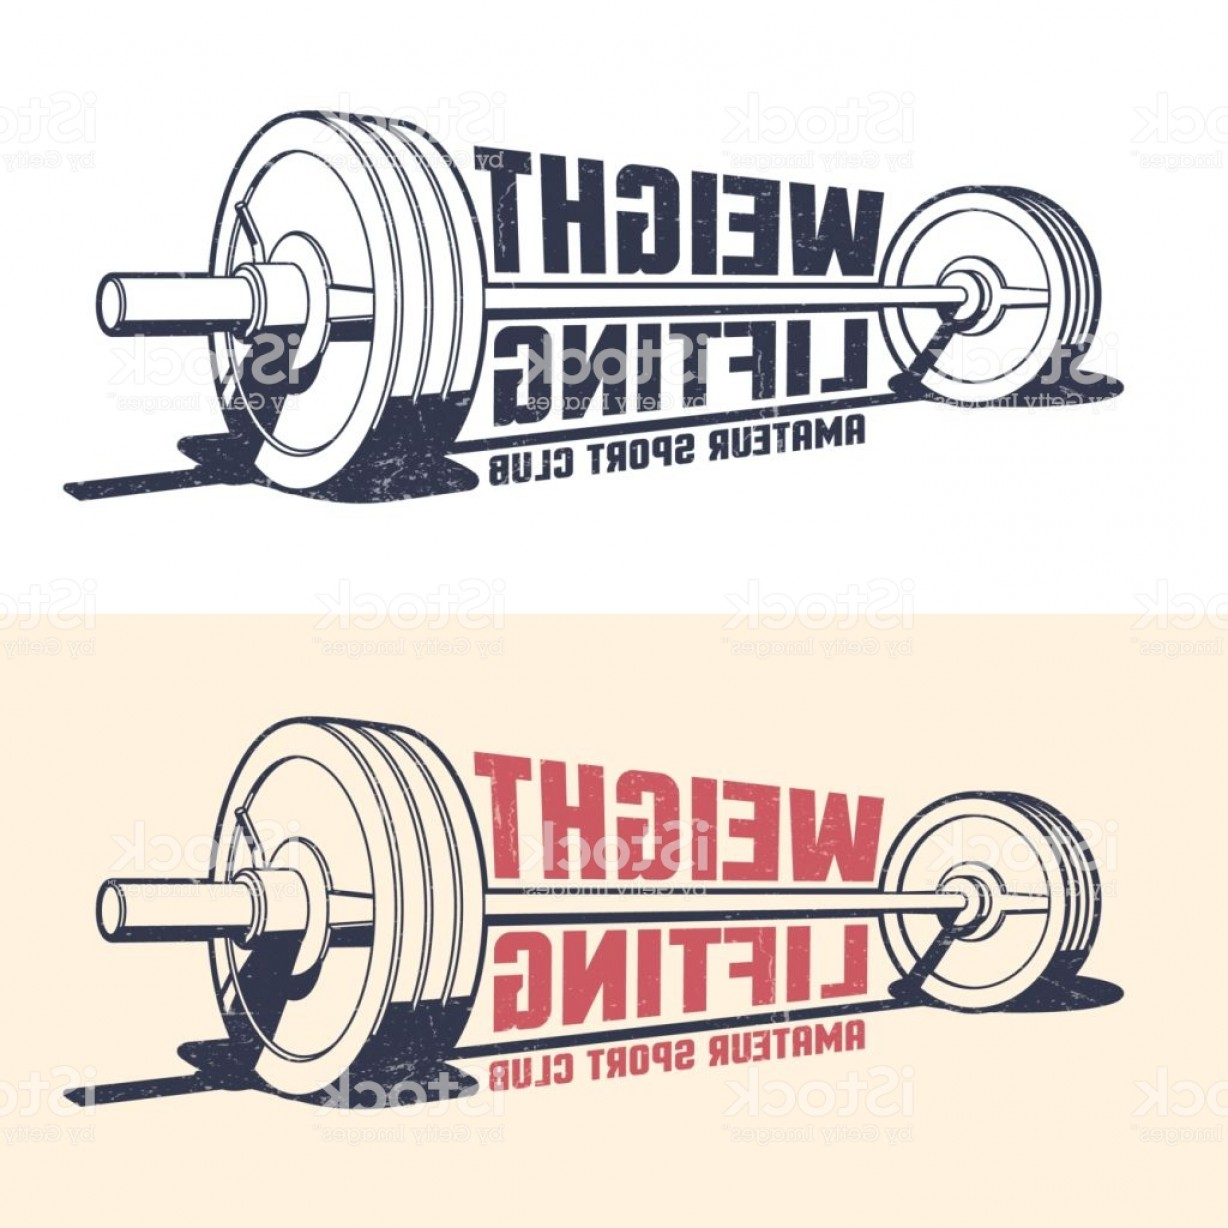 Weight Lifting Vector Graphics: Weightlifting Athleticism Vintage Emblem Gm